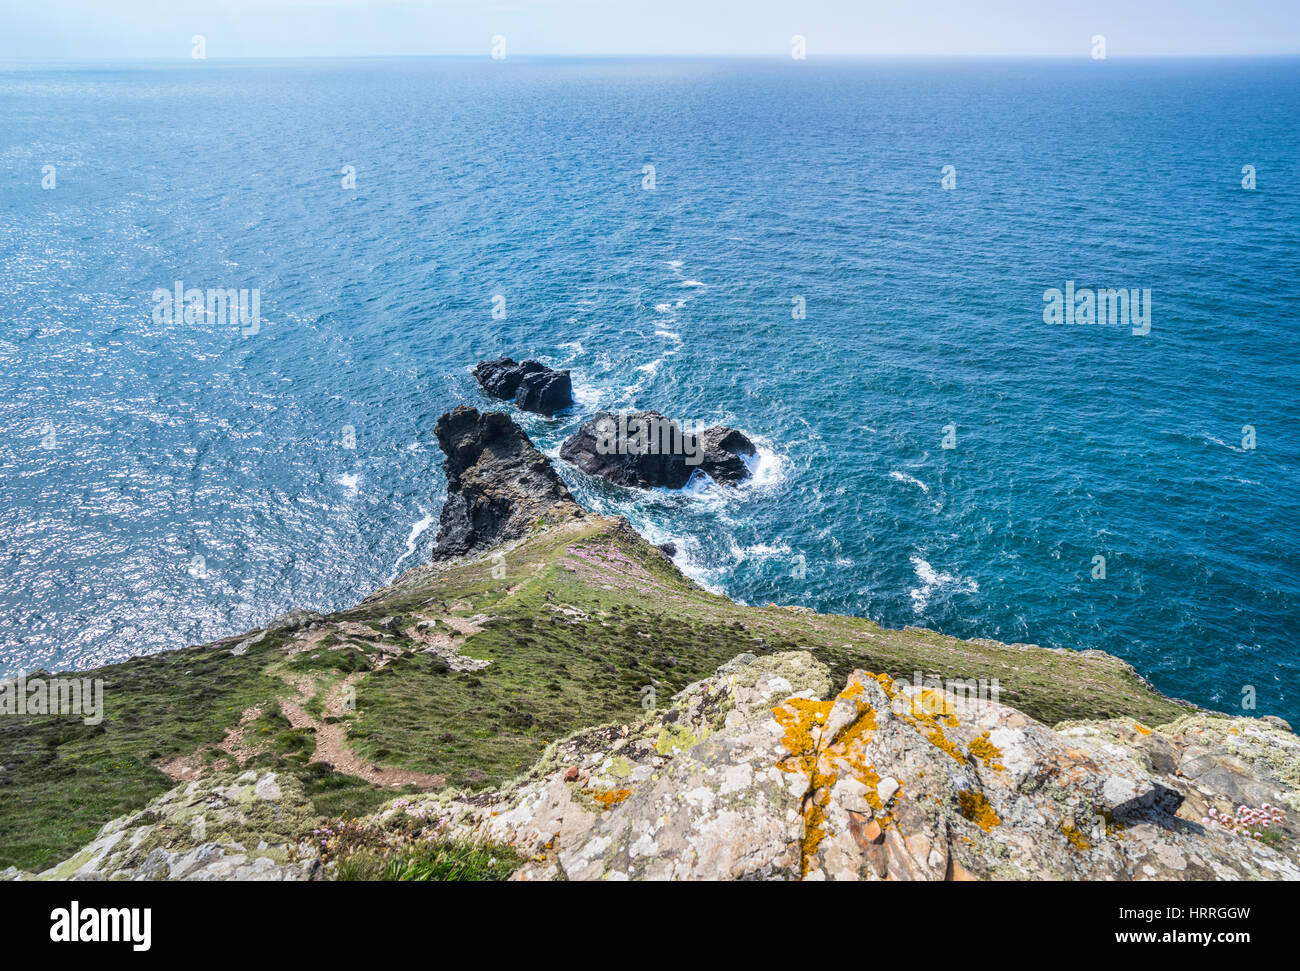 United Kingdom, South West England, Cornwall, St. Agnes Heritage Coast, view of St. Agnes Head - Stock Image